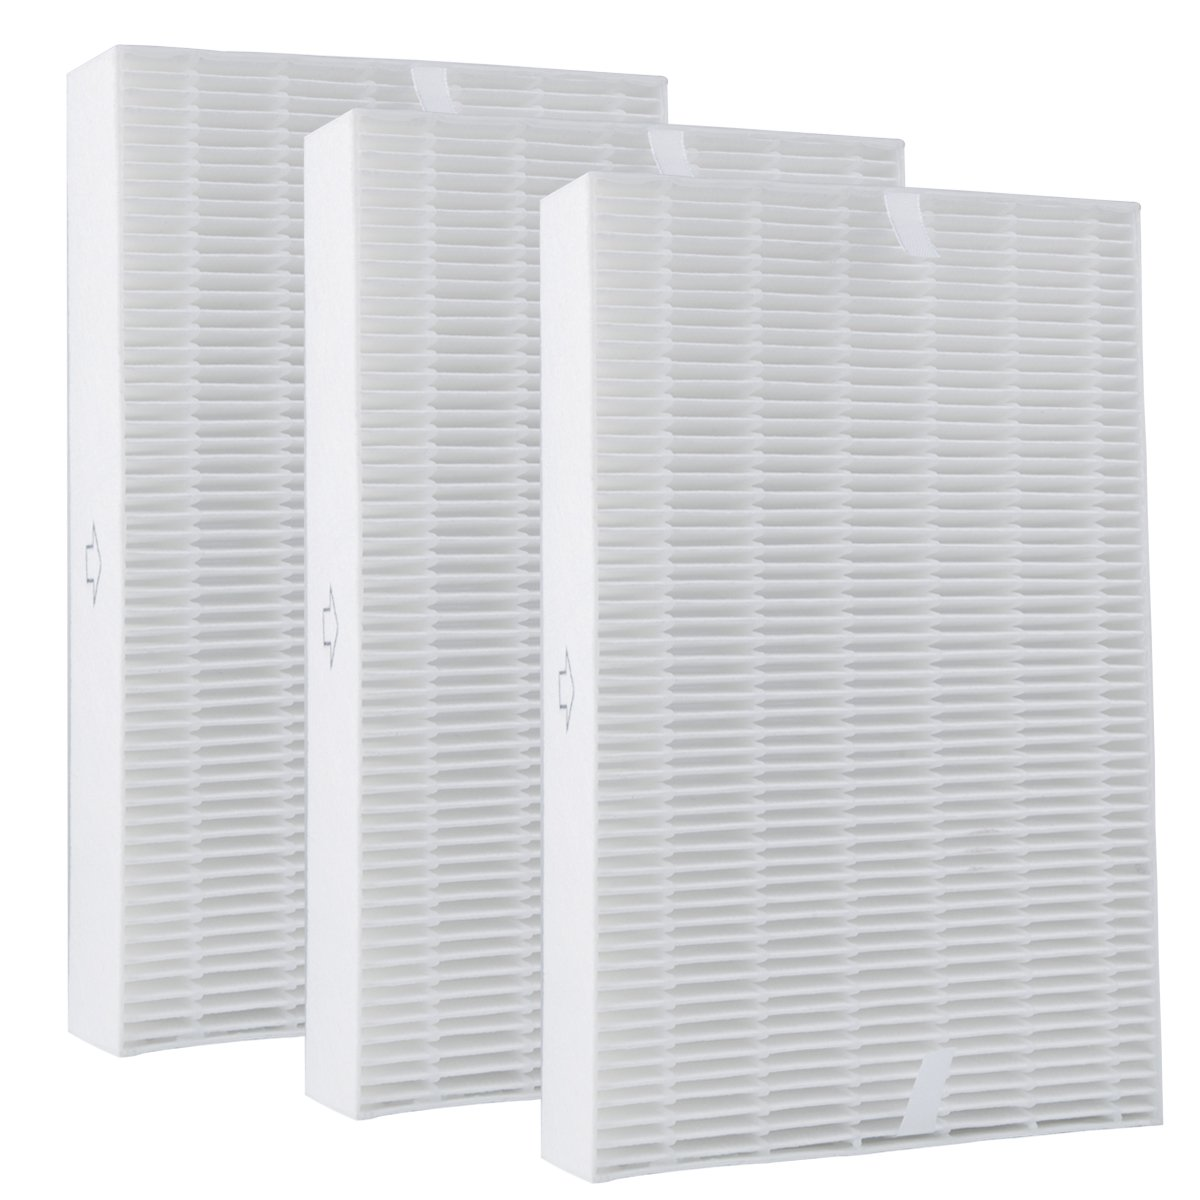 I clean Replacement Filters for Honeywell HPA300 Air Purifier, 3 Packs R3 Hepa Filters for Honeywell HEPA R Filter (HRF-R3),HPA090, HPA100, HPA200